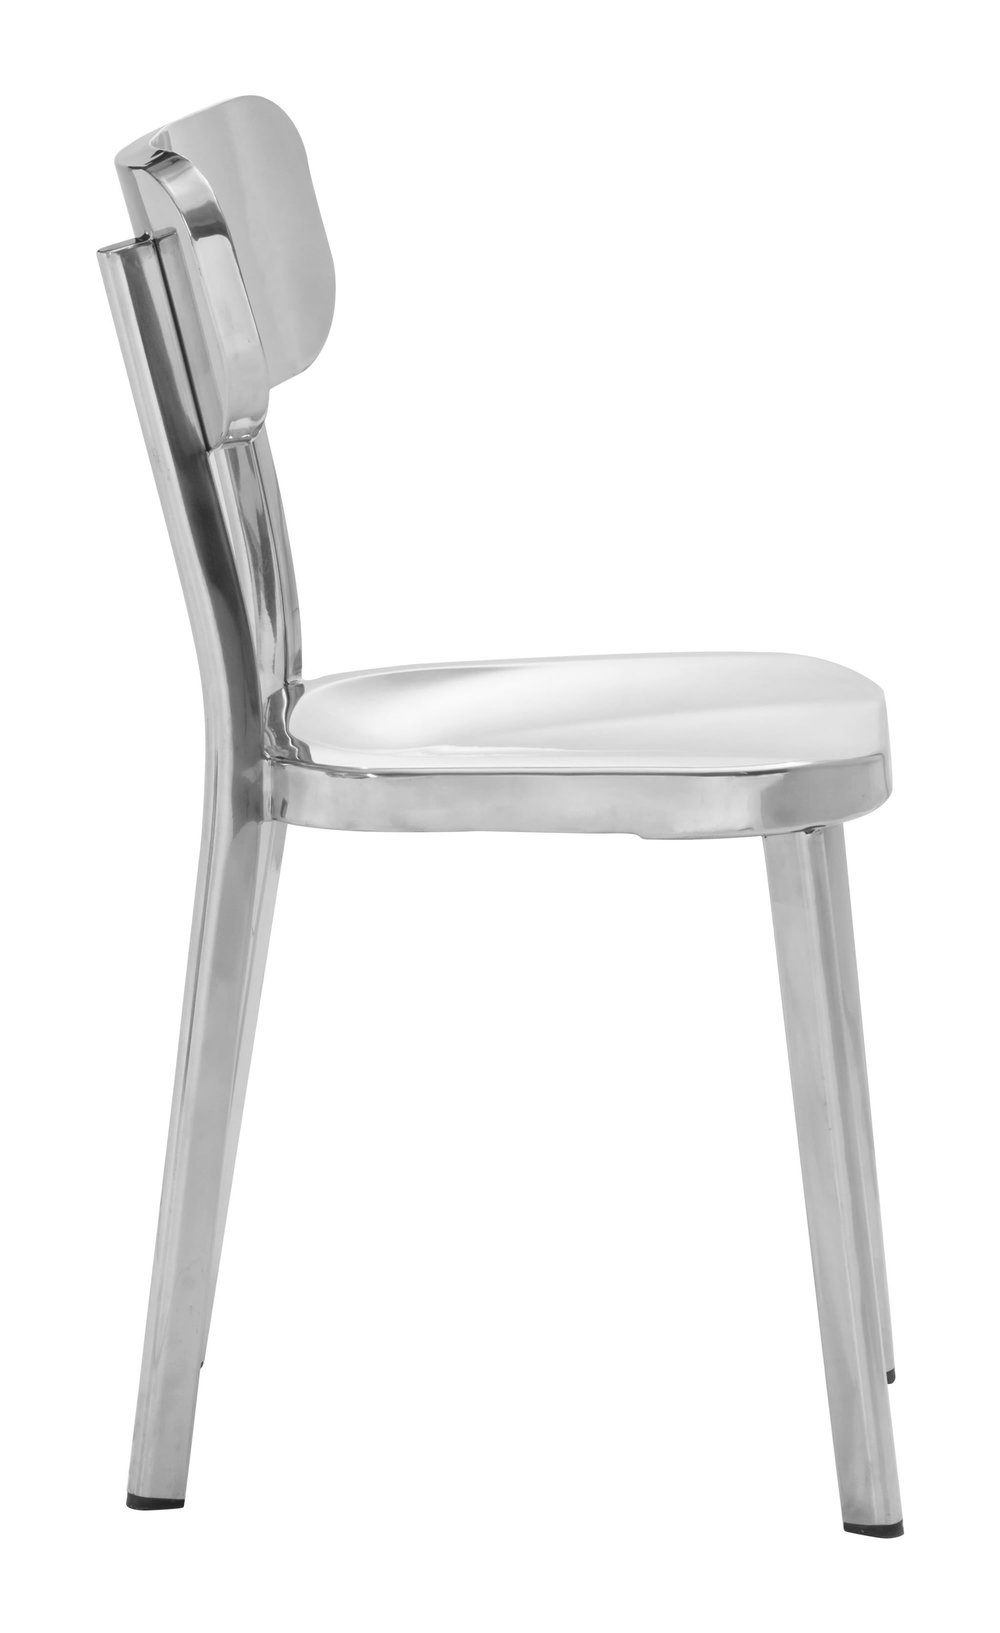 Zuo Modern Contemporary - Winter Dining Chair - Set of 2 - Polished Stainless Steel